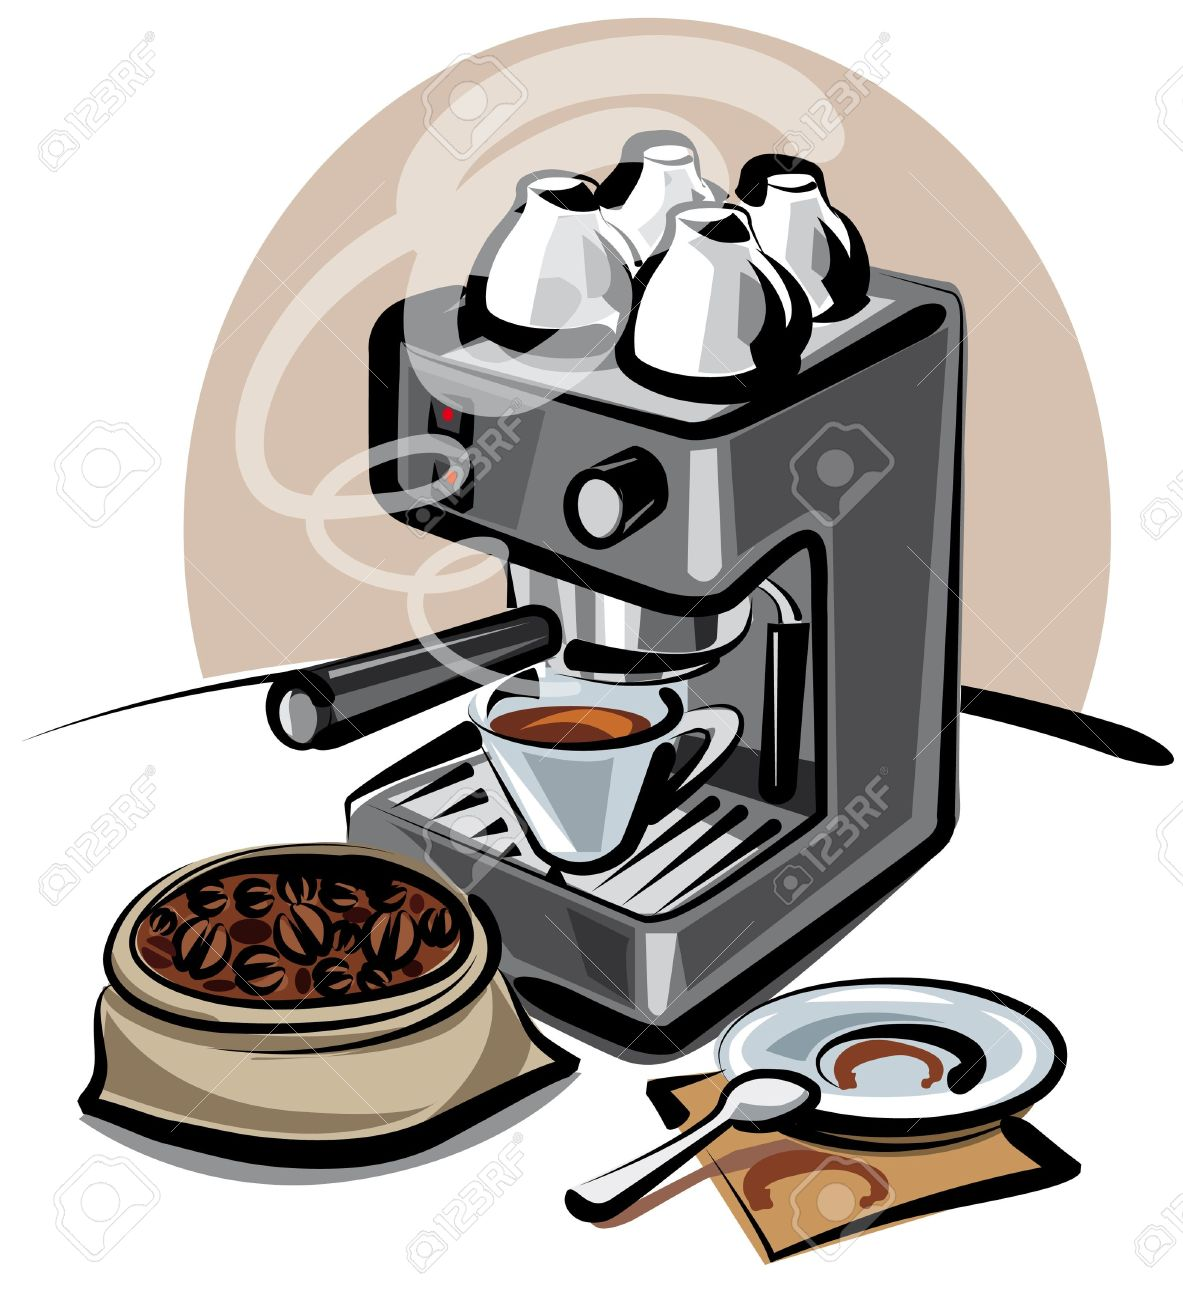 Coffee Machine Royalty Free Cliparts, Vectors, And Stock.